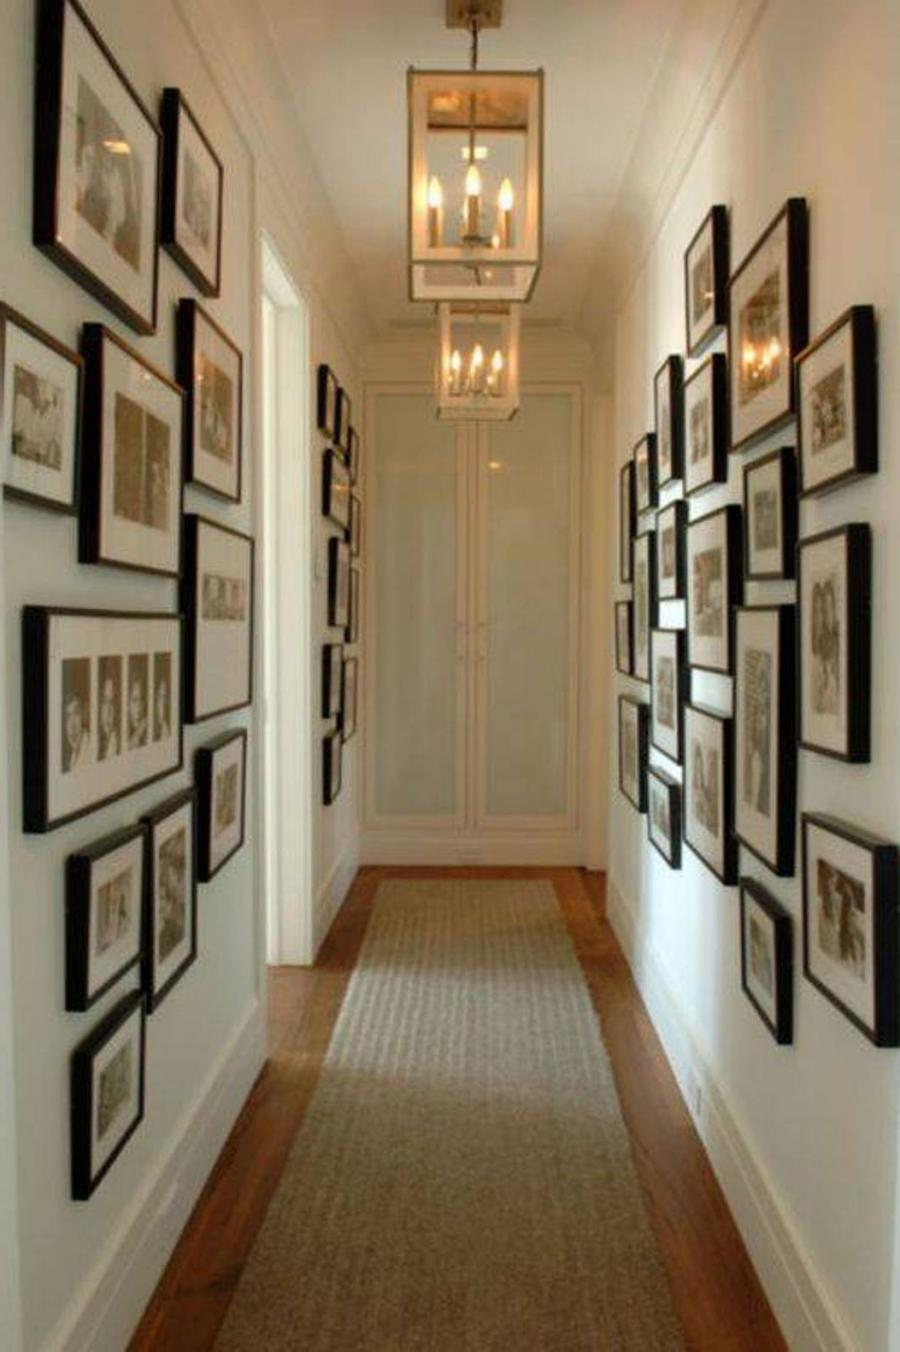 Hanging photos on a hallway wall